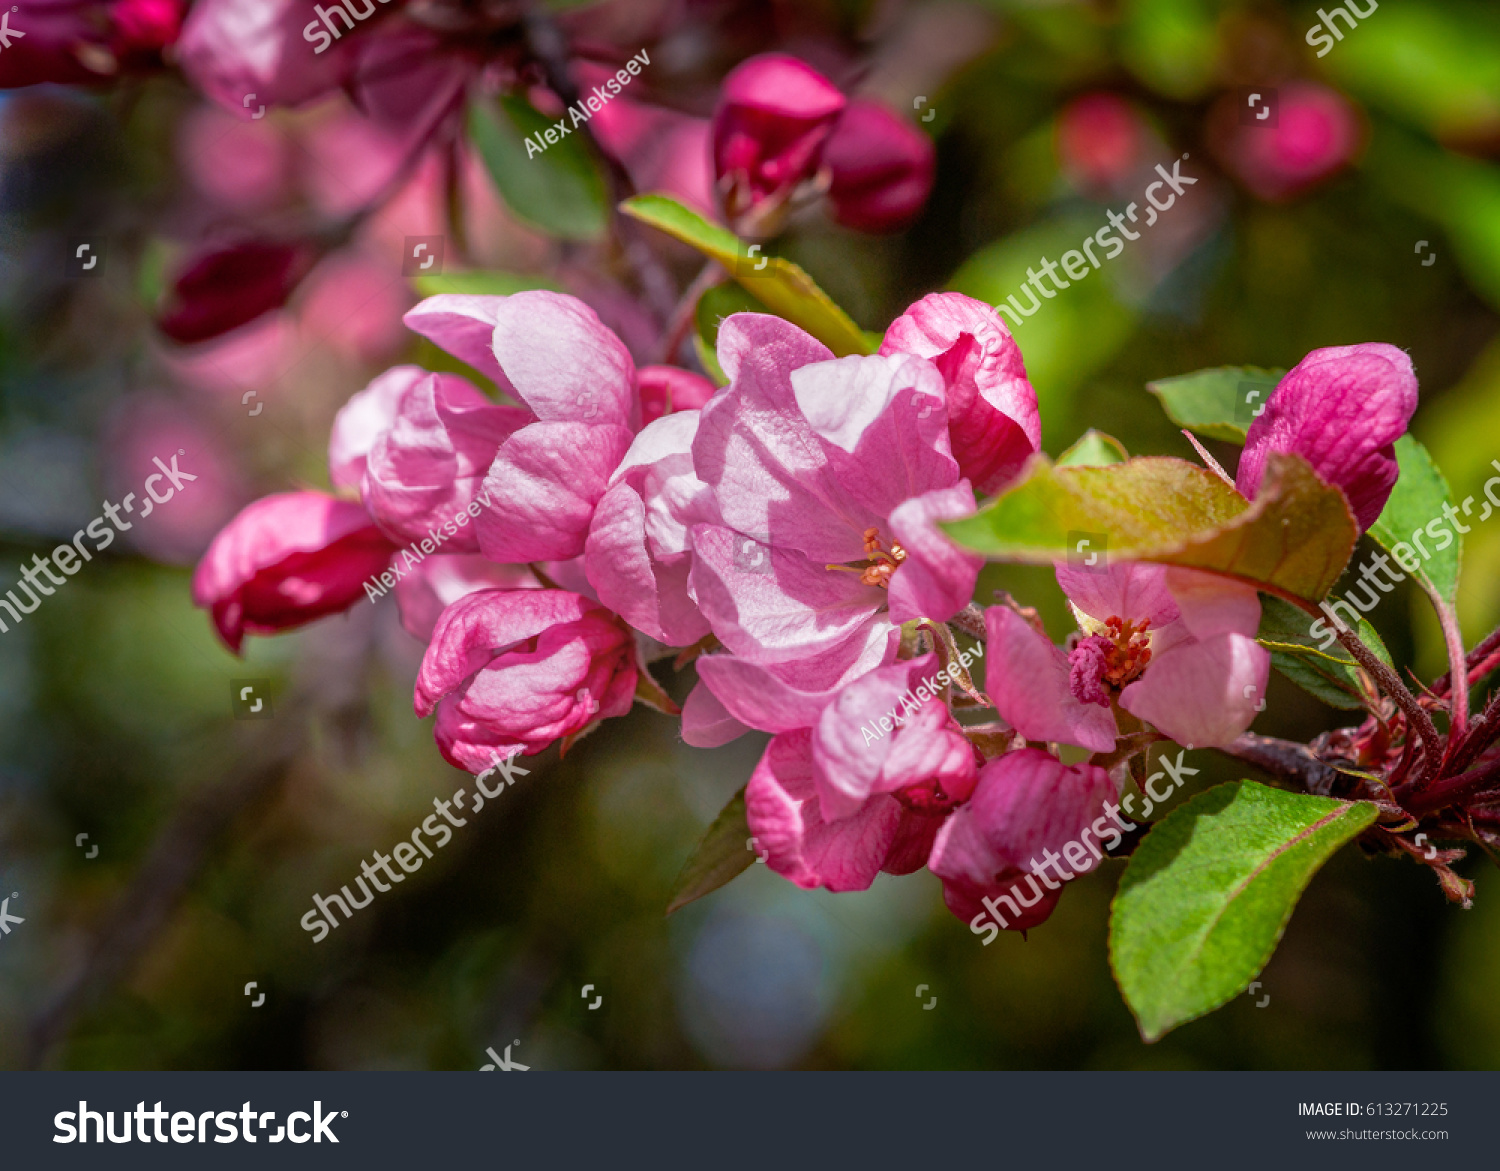 Closeup view of crabapple tree in bloom clusters or bunches of pink id 613271225 mightylinksfo